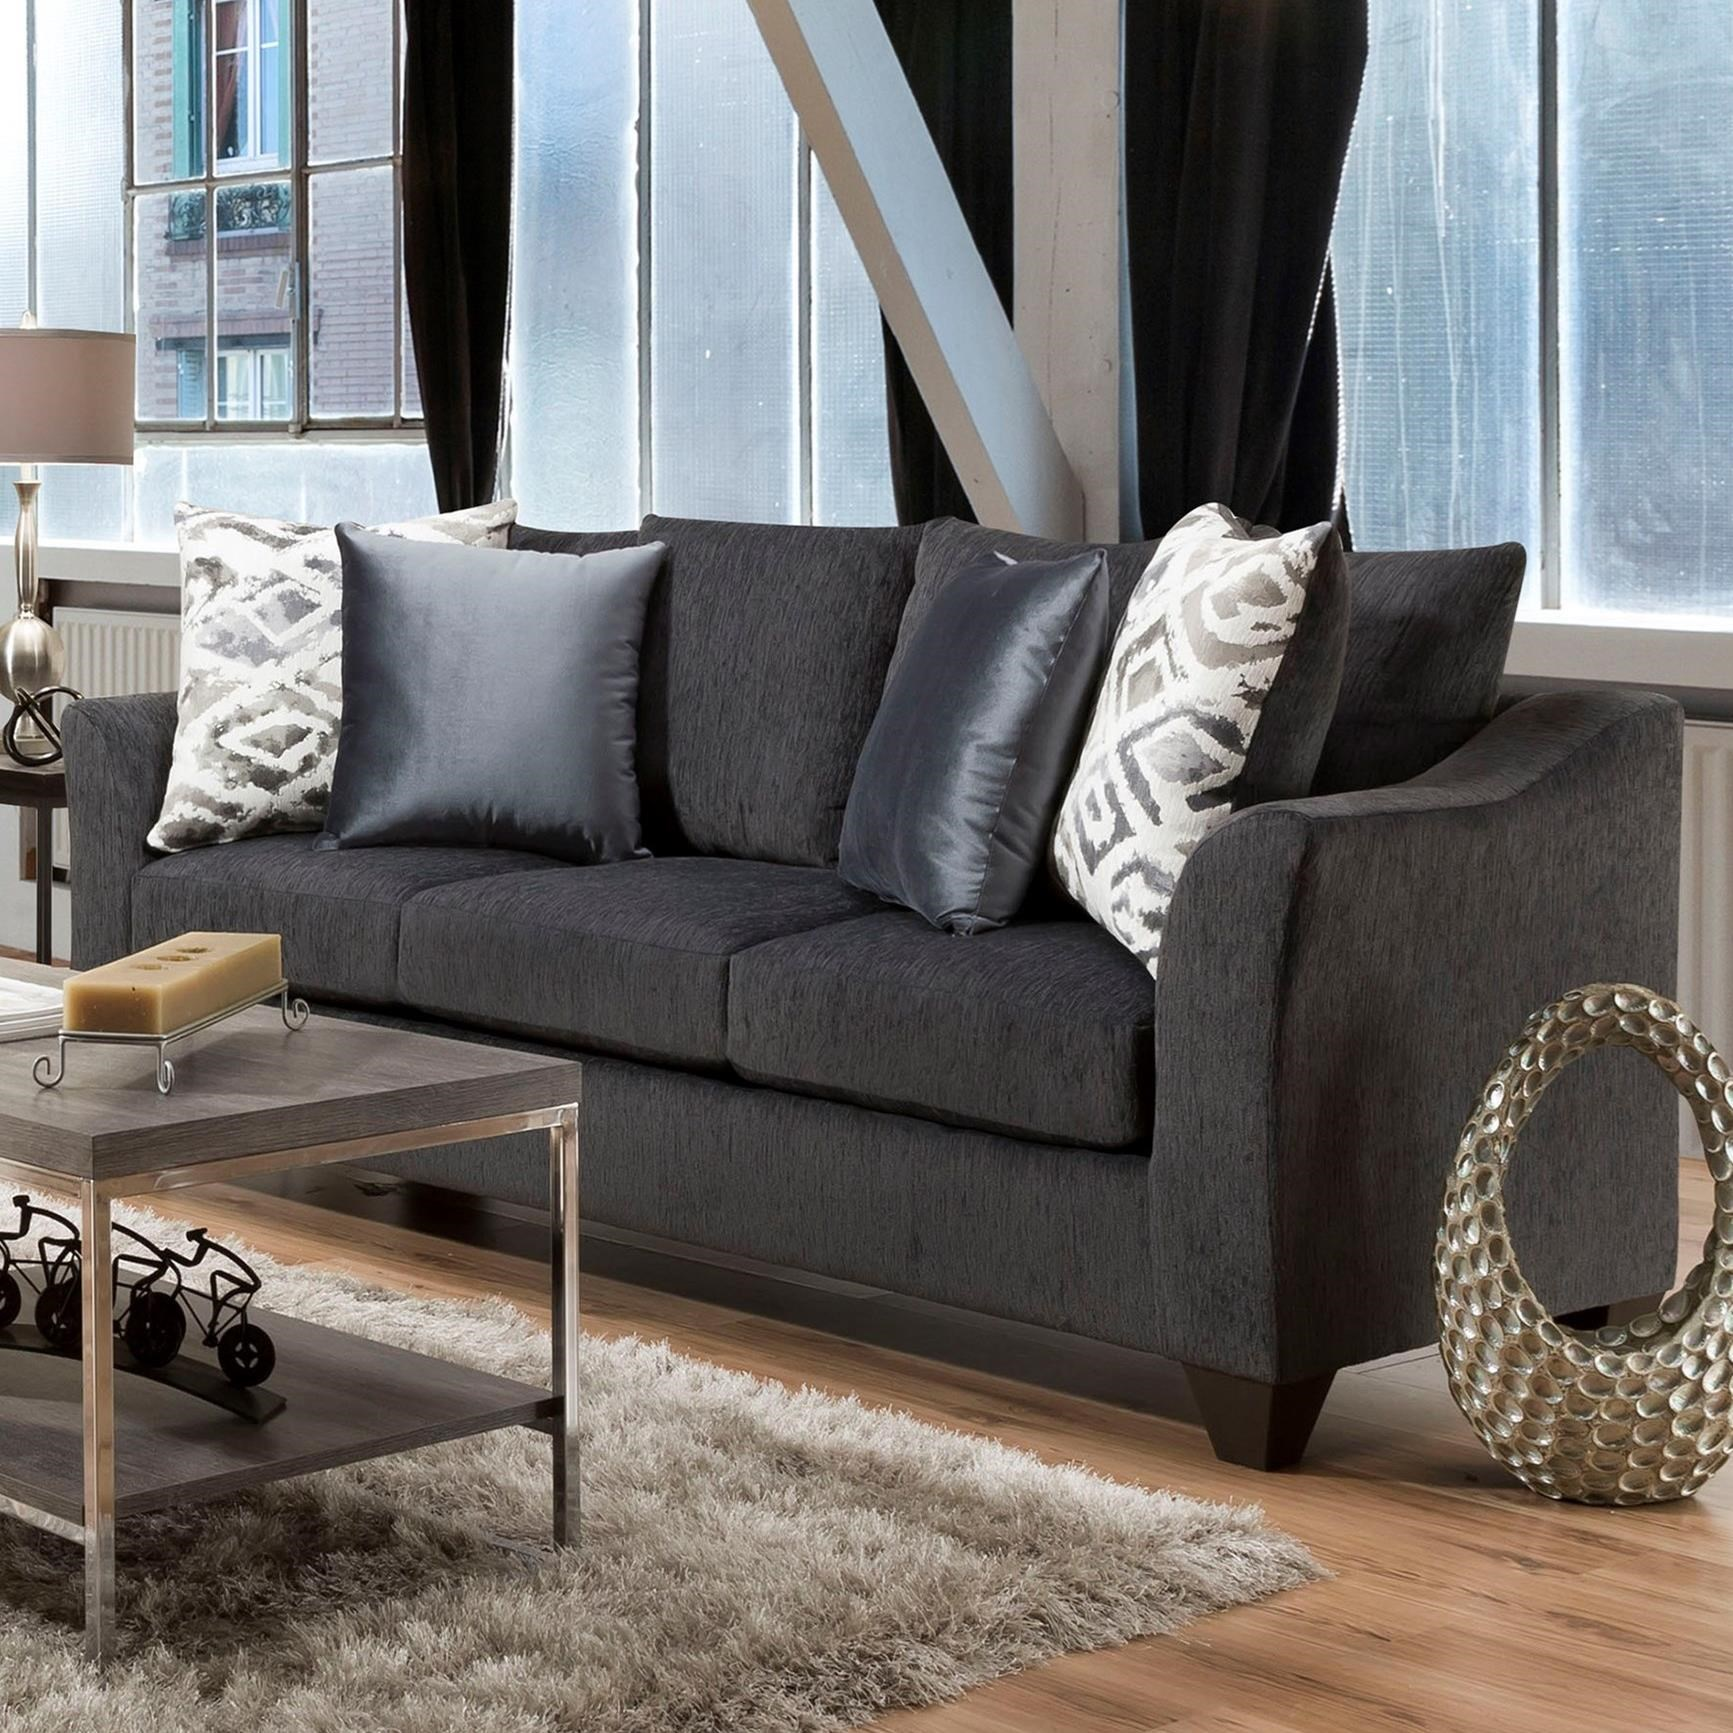 1370 Sofa by Peak Living at Prime Brothers Furniture